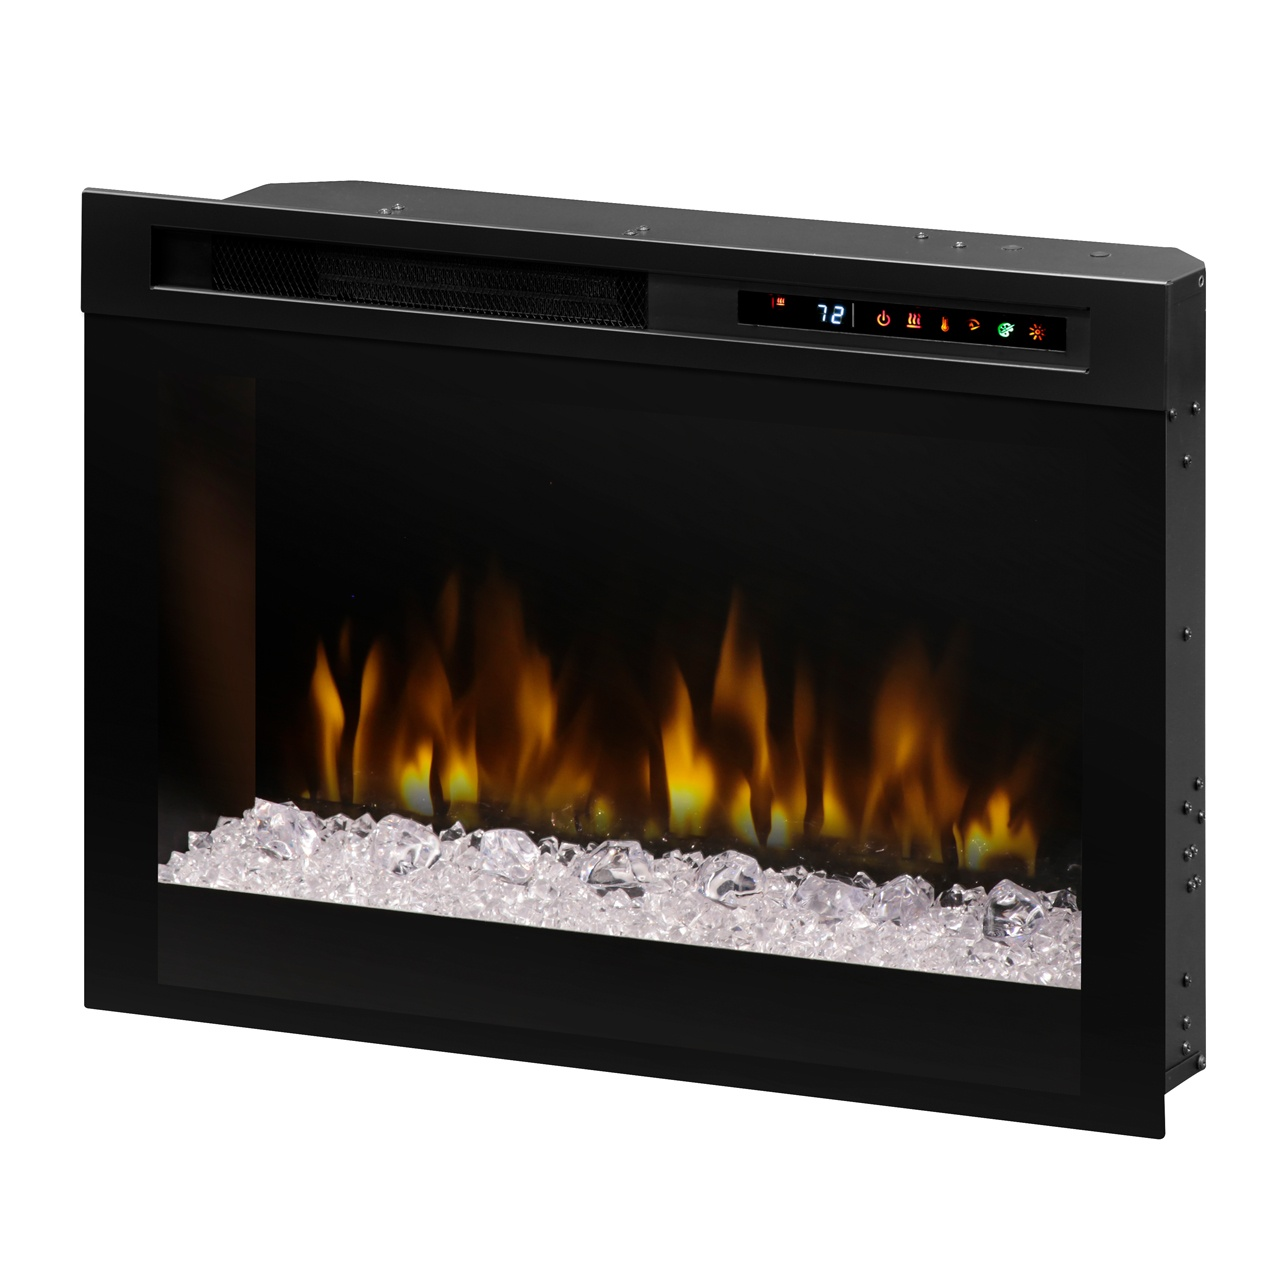 Dimplex 26 Quot Multi Fire Xhd26g Plug In Electric Fireplace